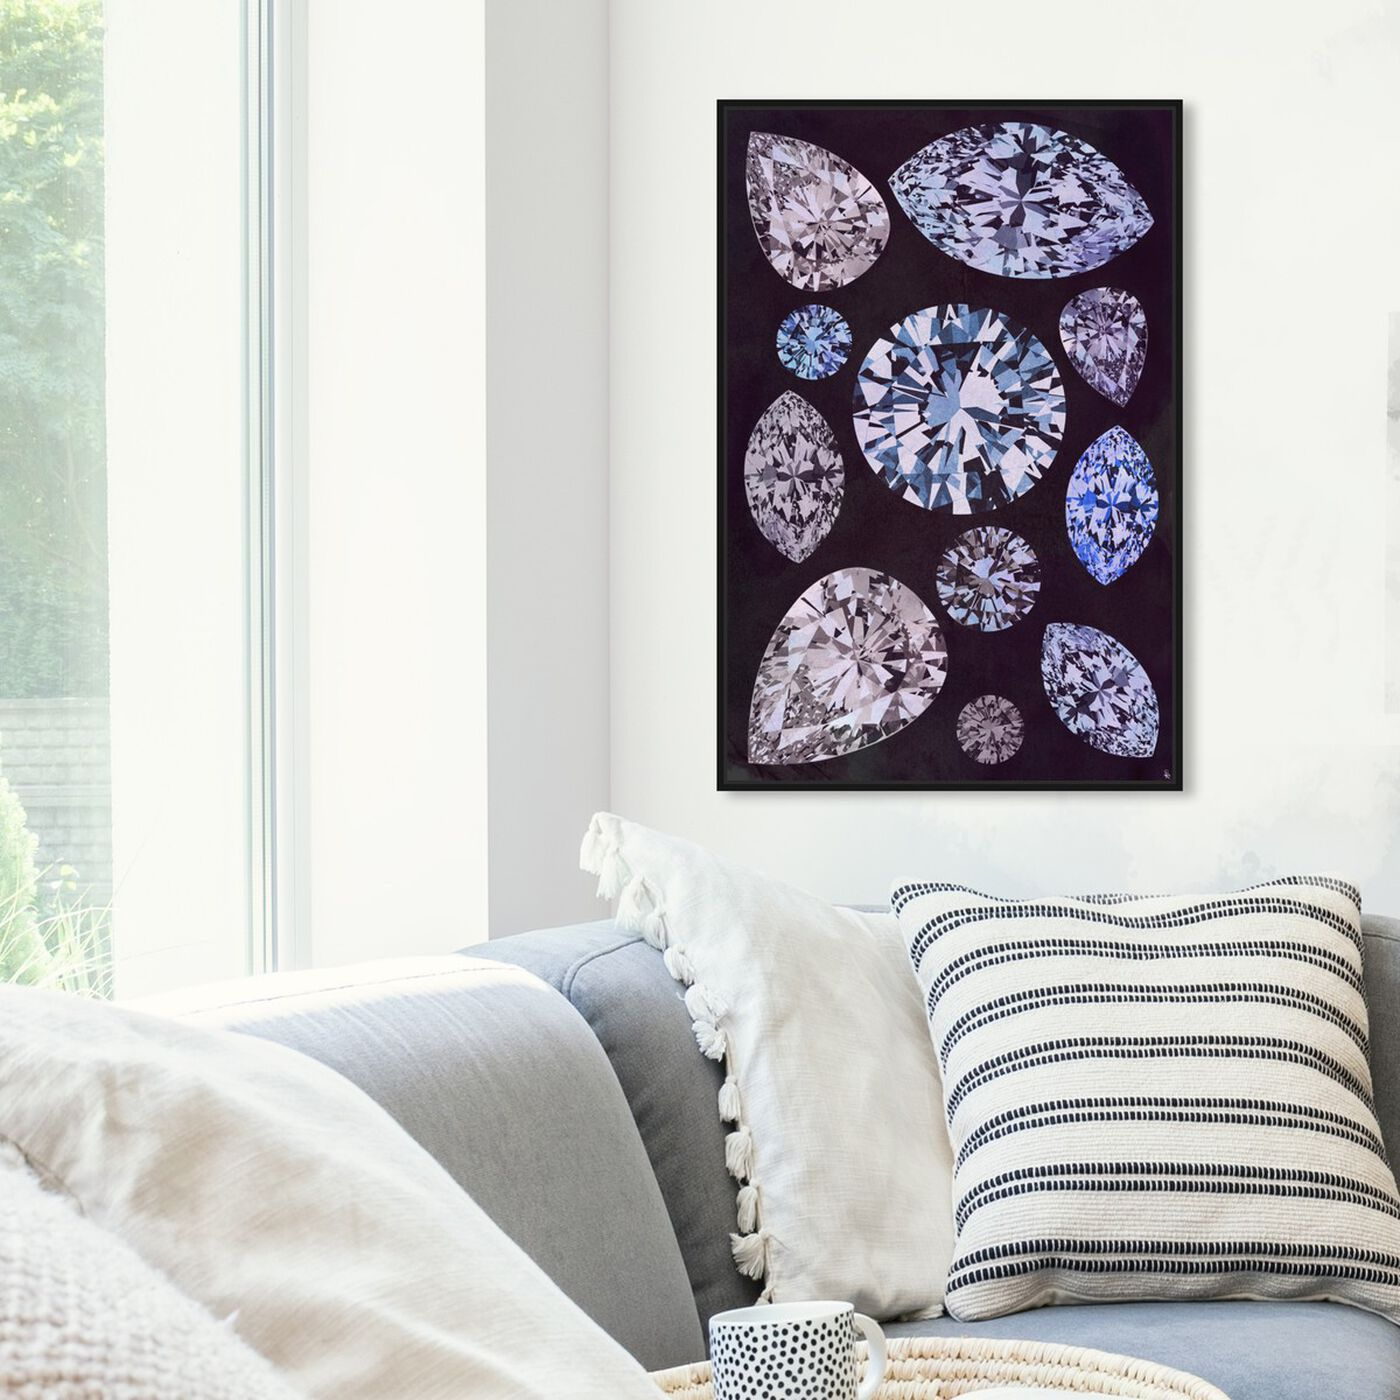 Hanging view of Violet Stones featuring abstract and crystals art.